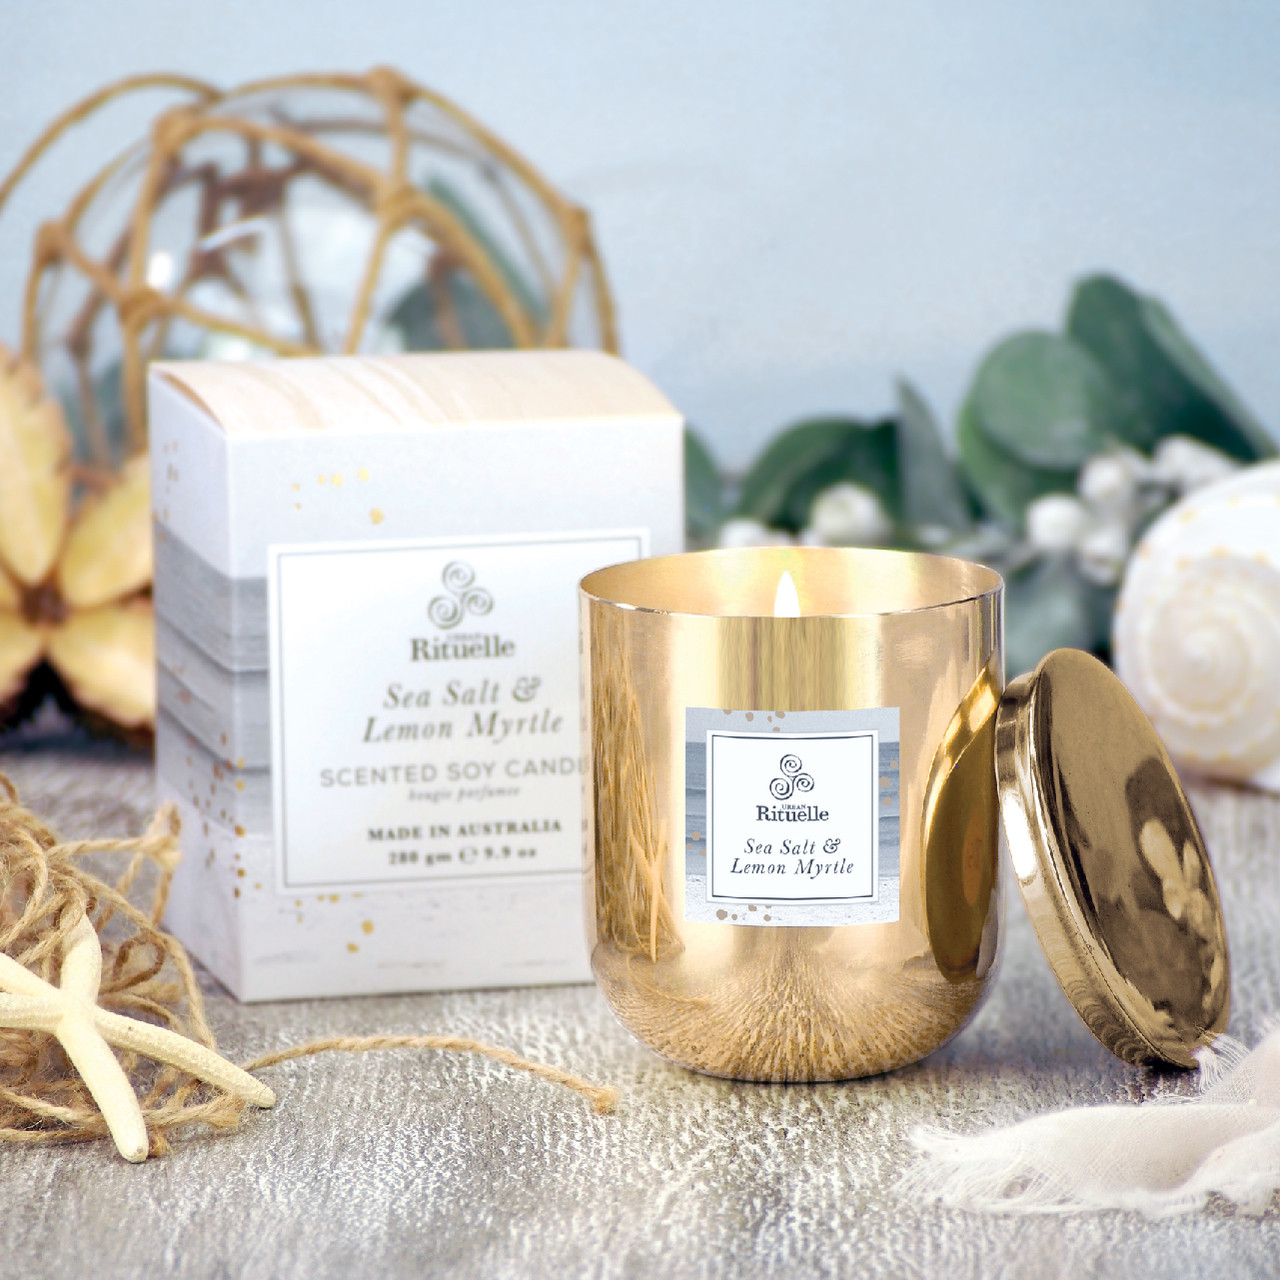 Summer Holiday - Sea Salt & Lemon Myrtle - Scented Soy Candle Brass Jar - Urban Rituelle